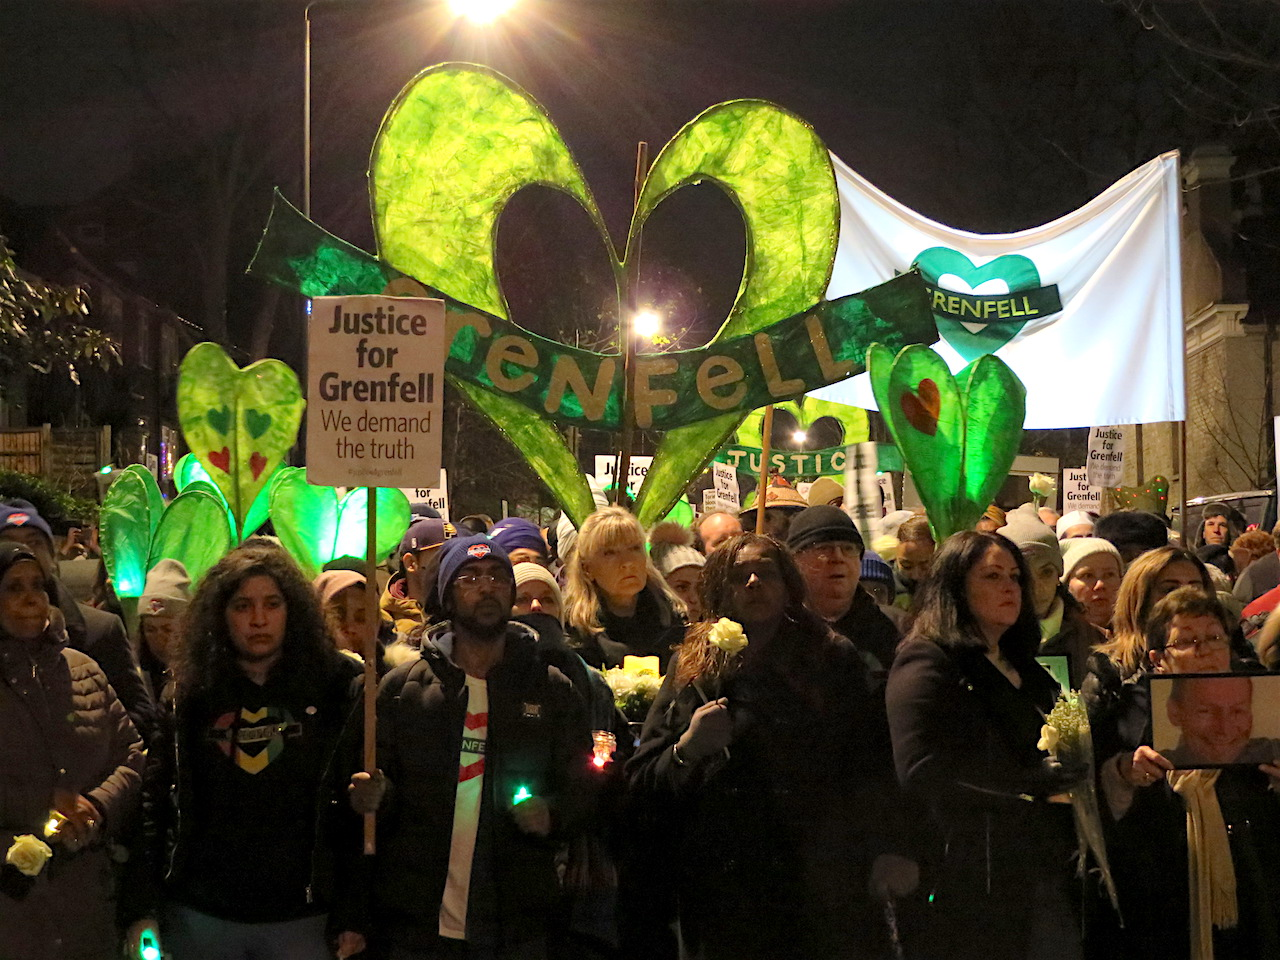 The Silent Walk for Grenfell, December 14, 2017 (Photo: Andy Worthington).